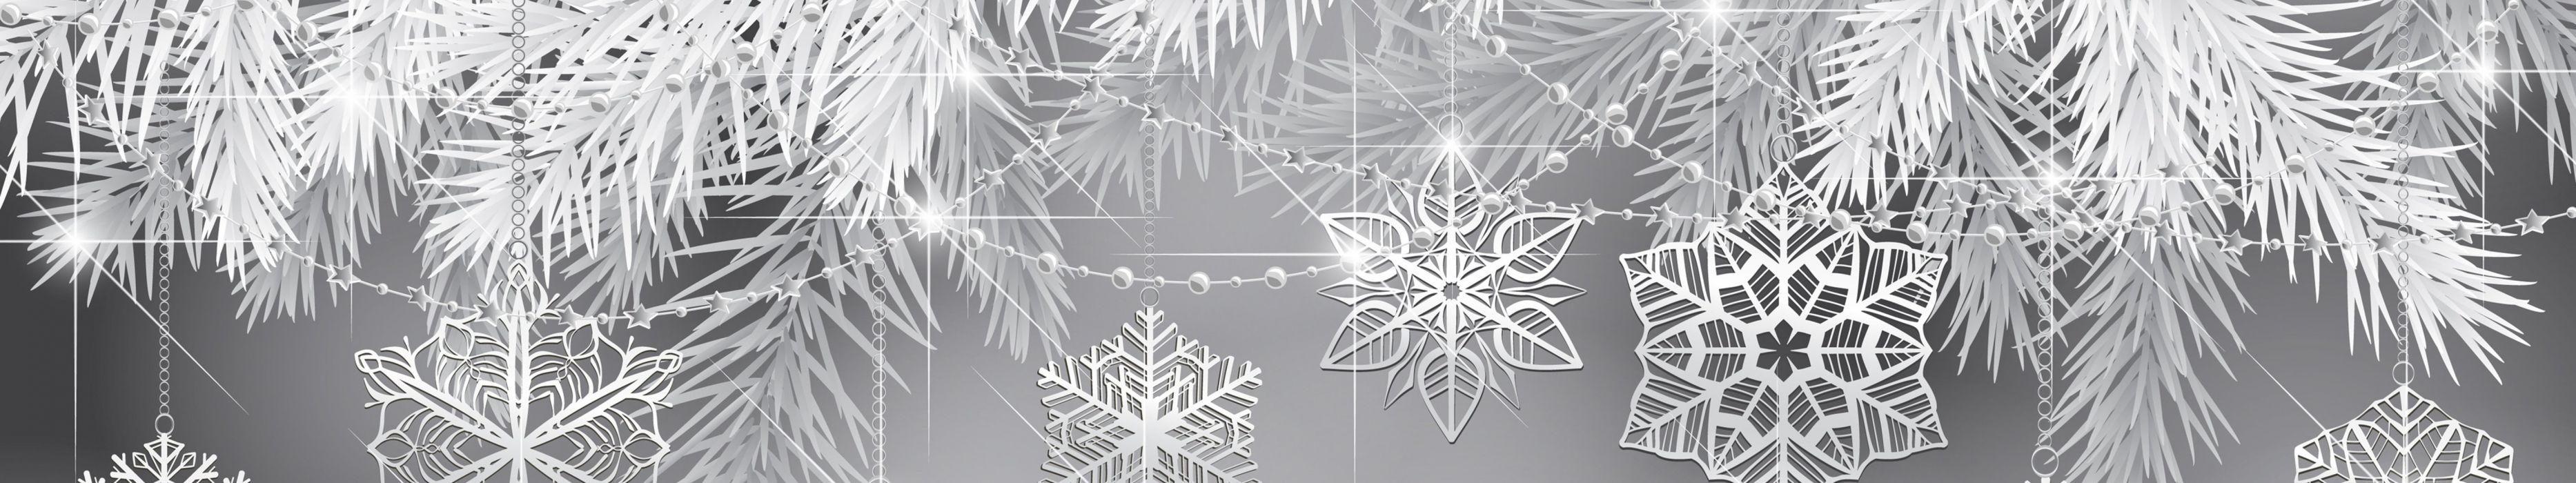 triple monitor multi multiple screen winter hiver abstract flocon neige snow snowflake wallpaper